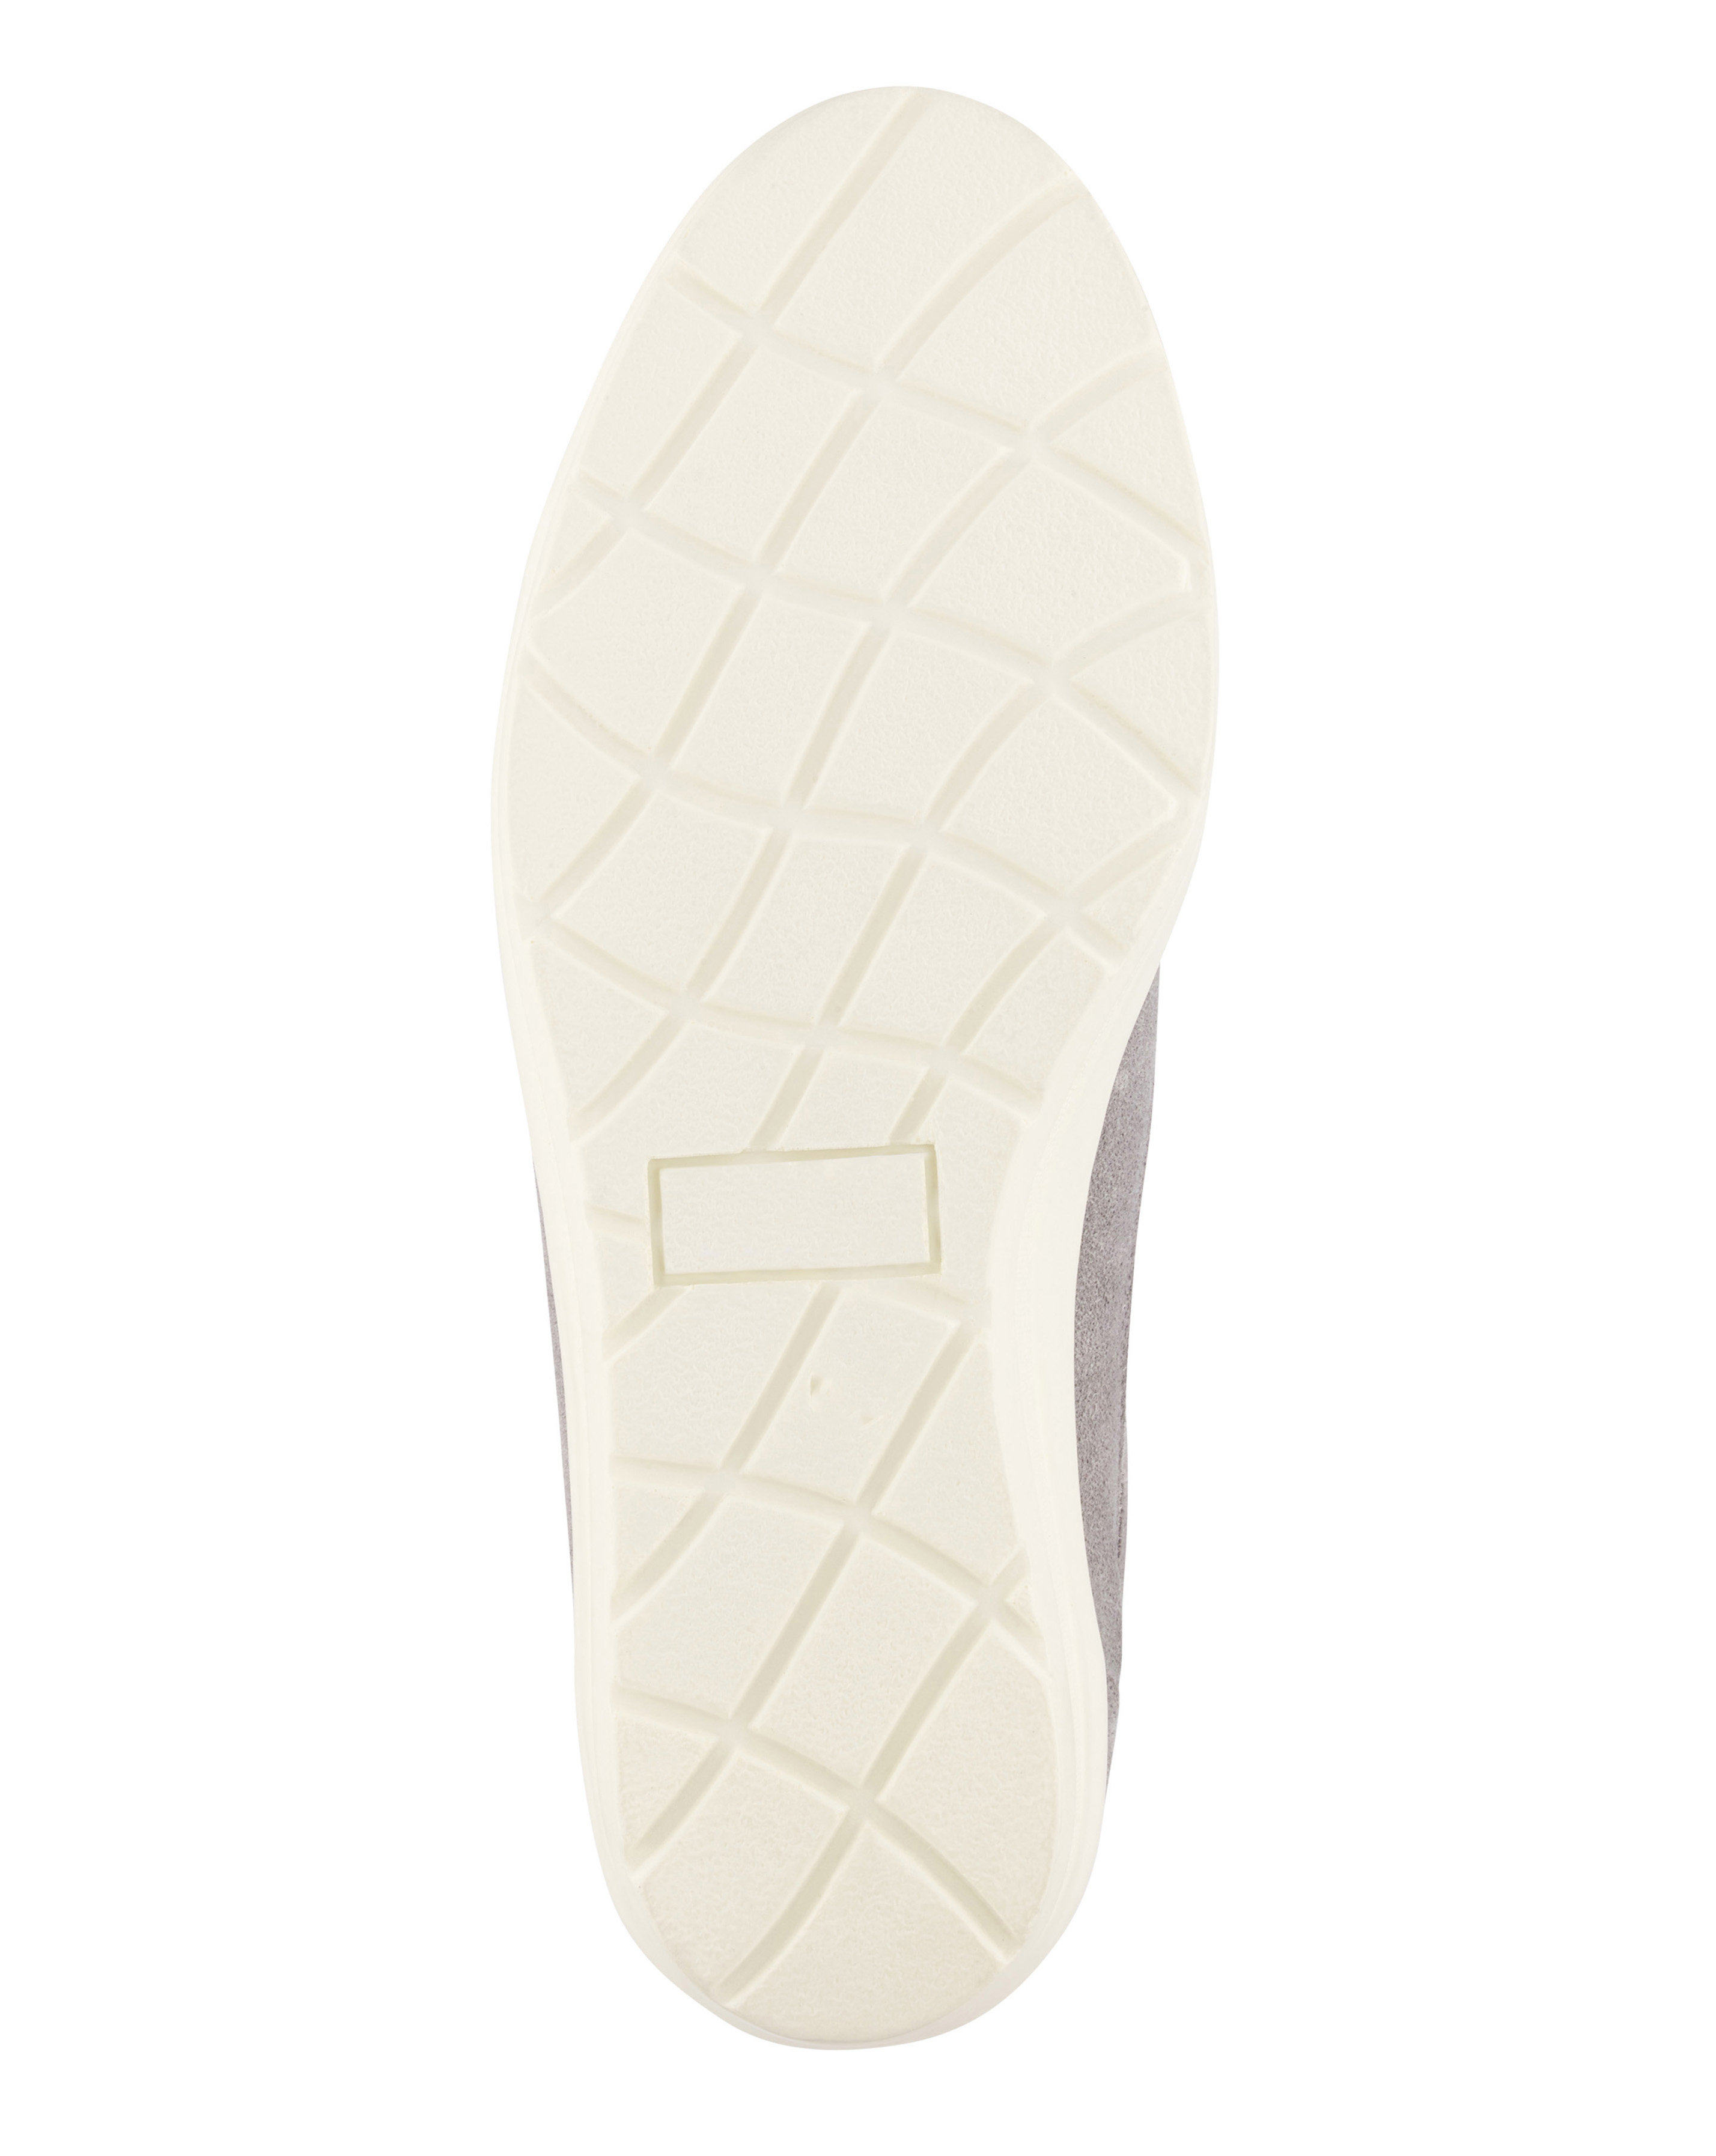 Womens-Trainers-Wedge-Heel-Soft-Leather-Lace-Up-Shoes-JD-Williams thumbnail 13